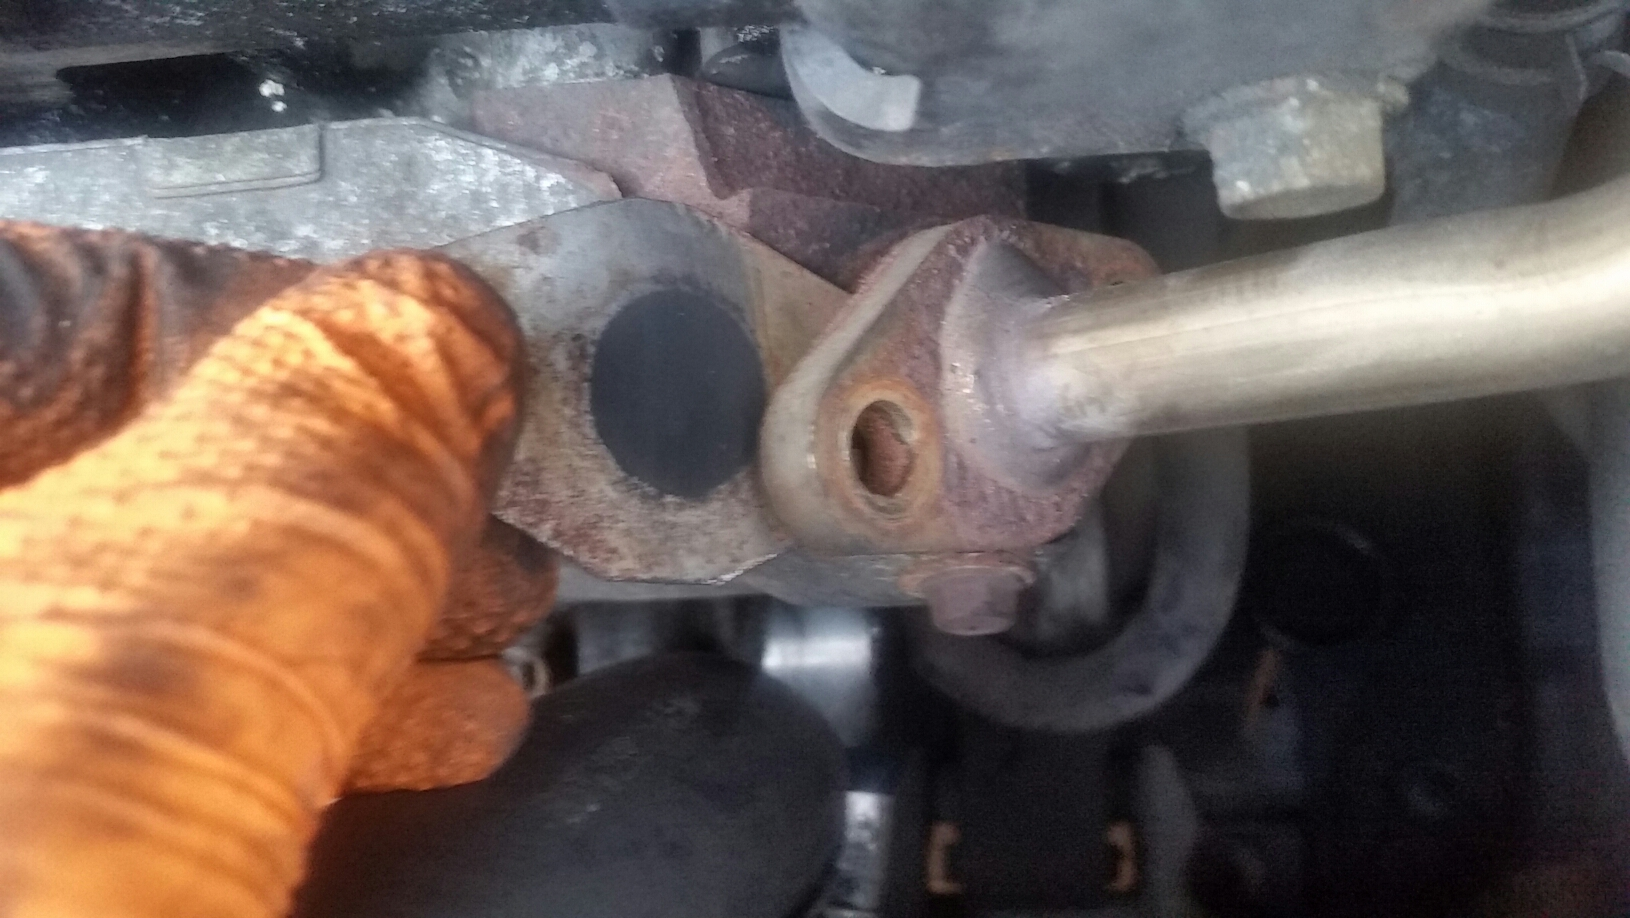 Astra Mk4/G] [98-04] - 1 7dti EGR blanked? | Vauxhall Owners Network